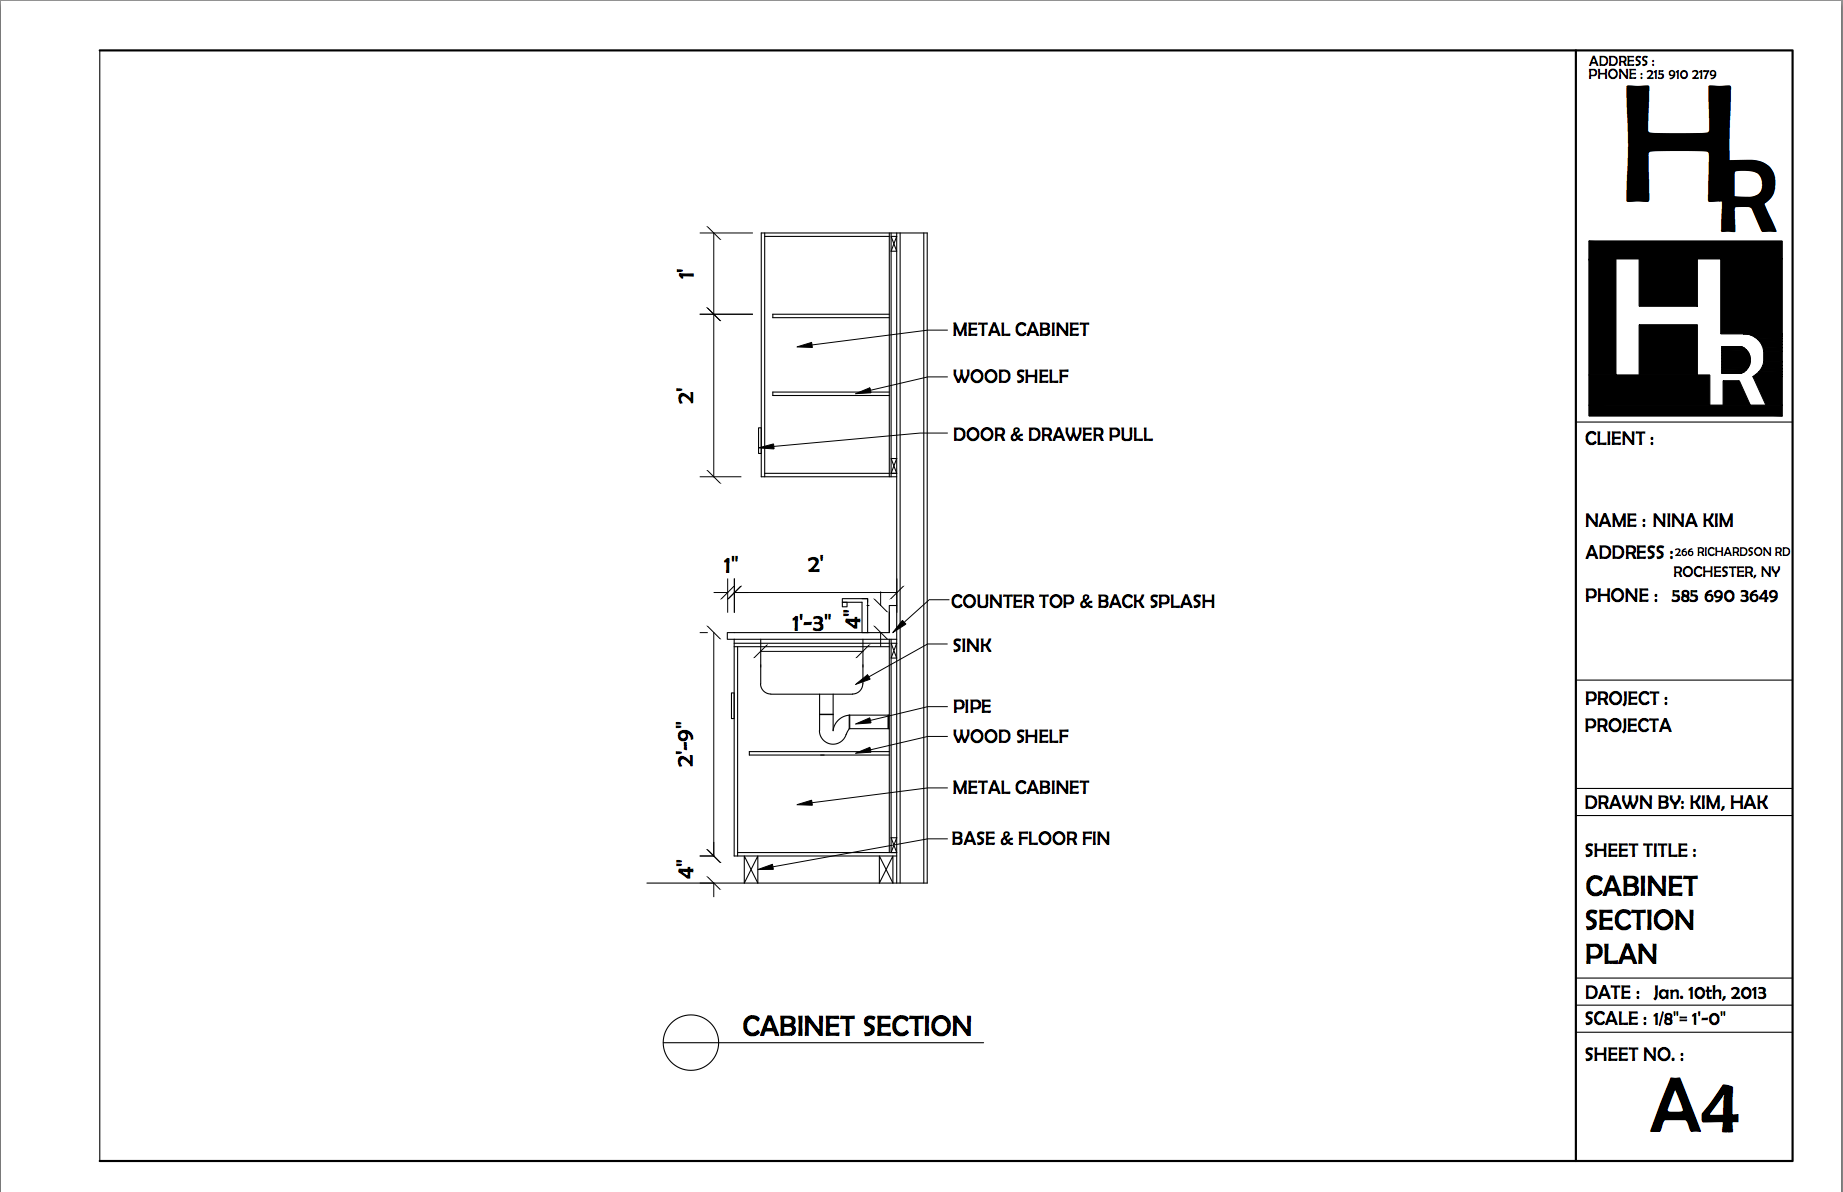 Best Kitchen Gallery: Cabi Section Drawing Portfolio Autocad Pinterest Design of Kitchen Cabinet Section Drawings on rachelxblog.com